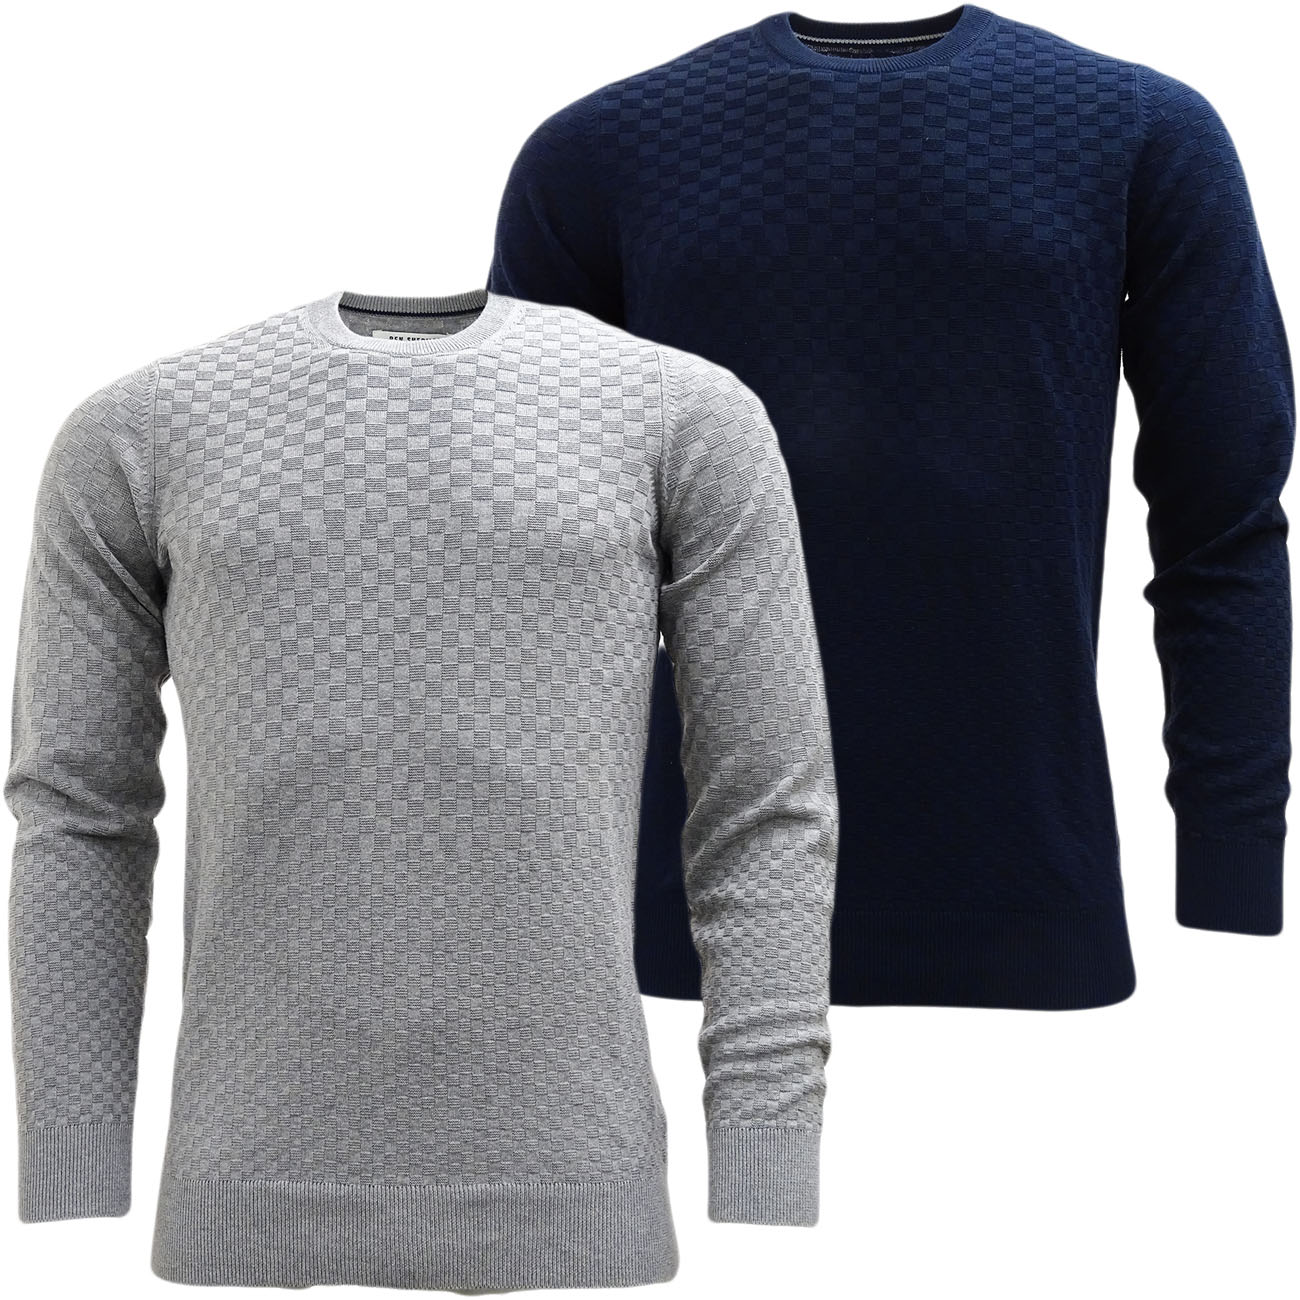 Mens Jumpers Ben Sherman Knitwear Jumper Lightweight Knitted Top